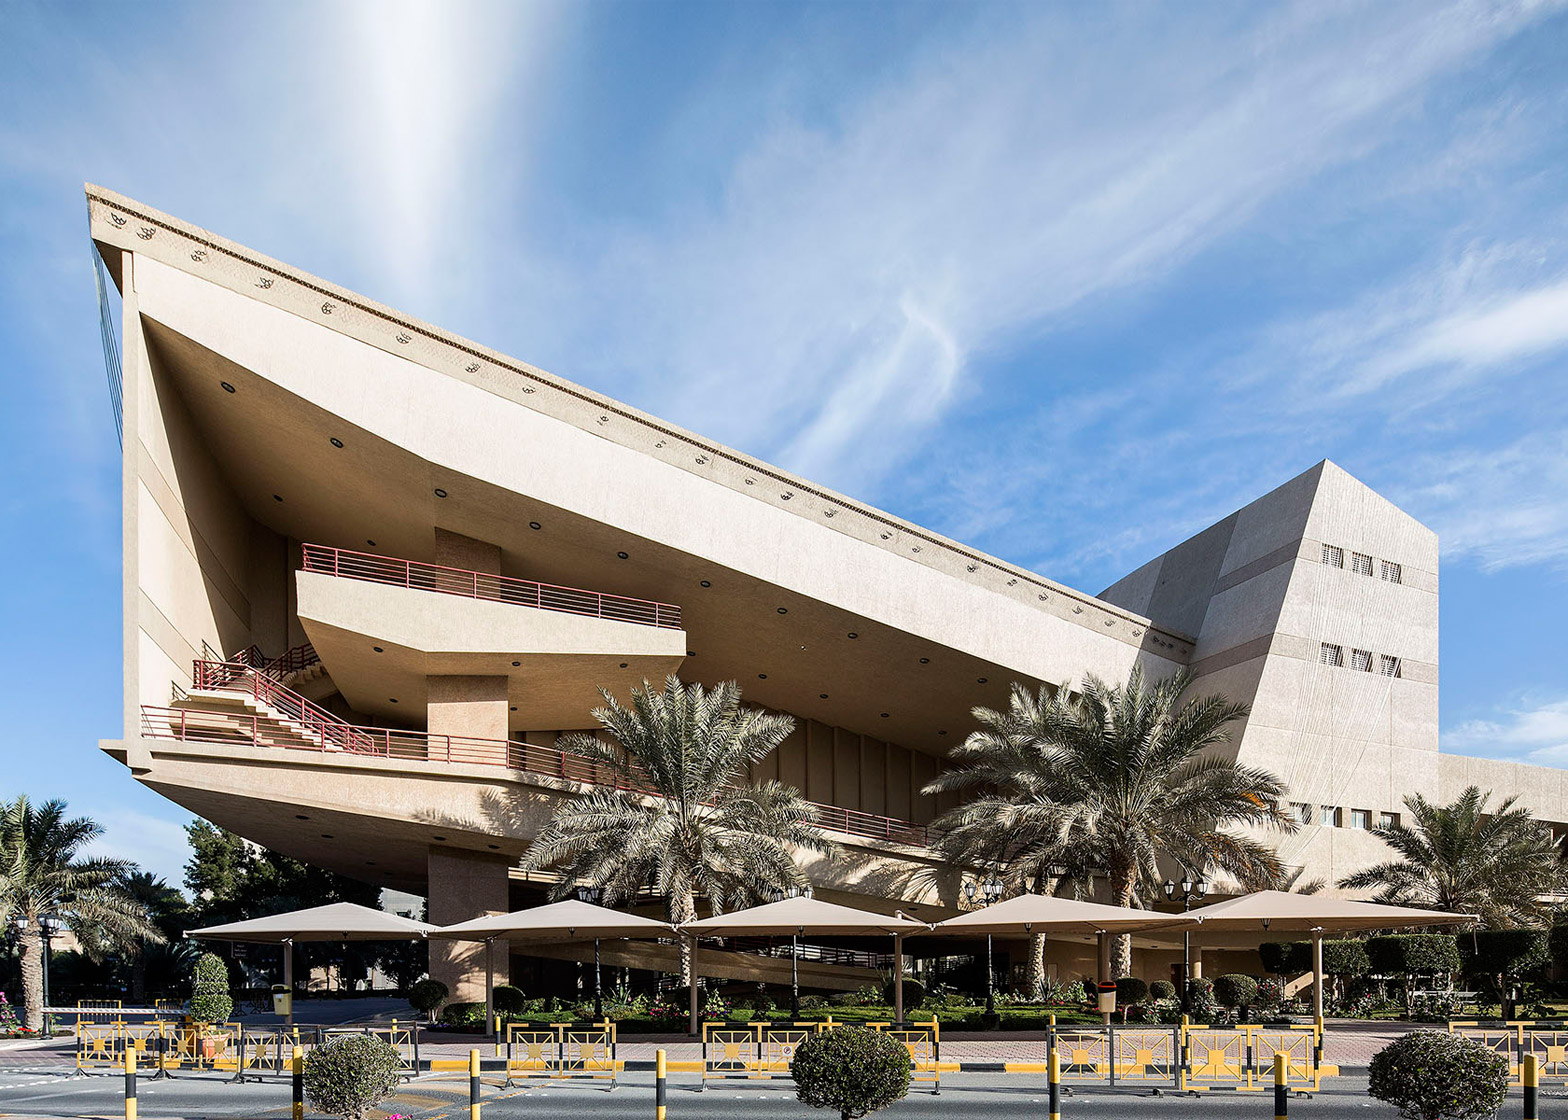 Modern Architecture nelson garrido captures architecture of kuwait's golden era